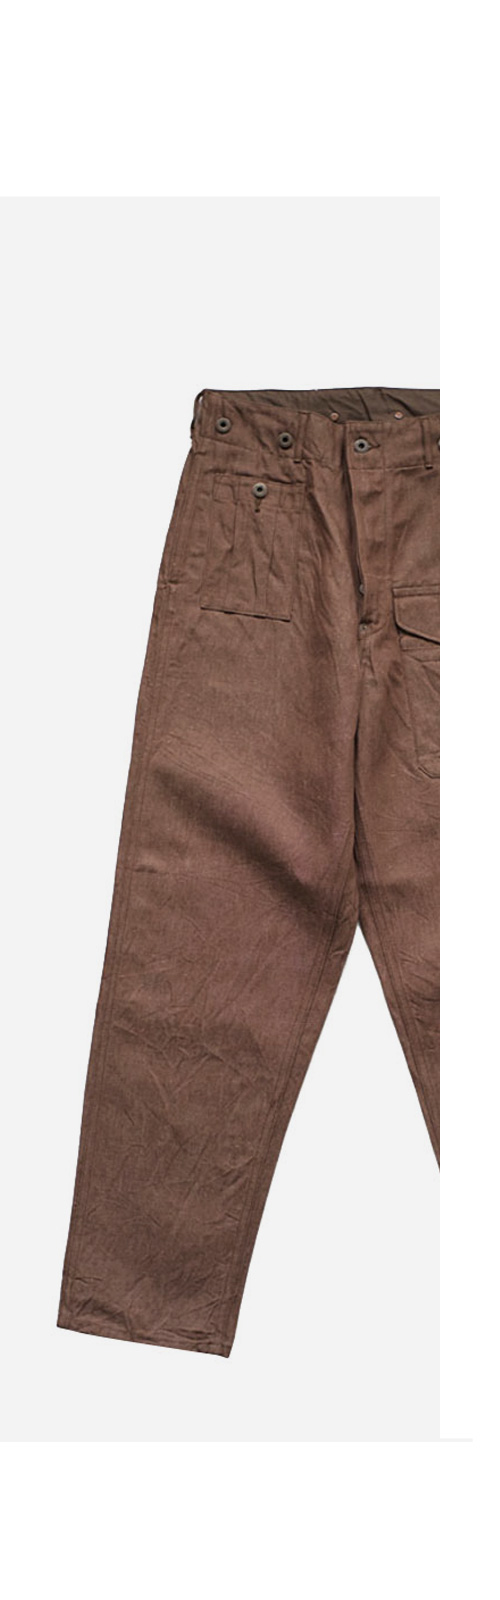 Nigel Cabourn - BATTLE DRESS PANT C/L DENIM - BROWN